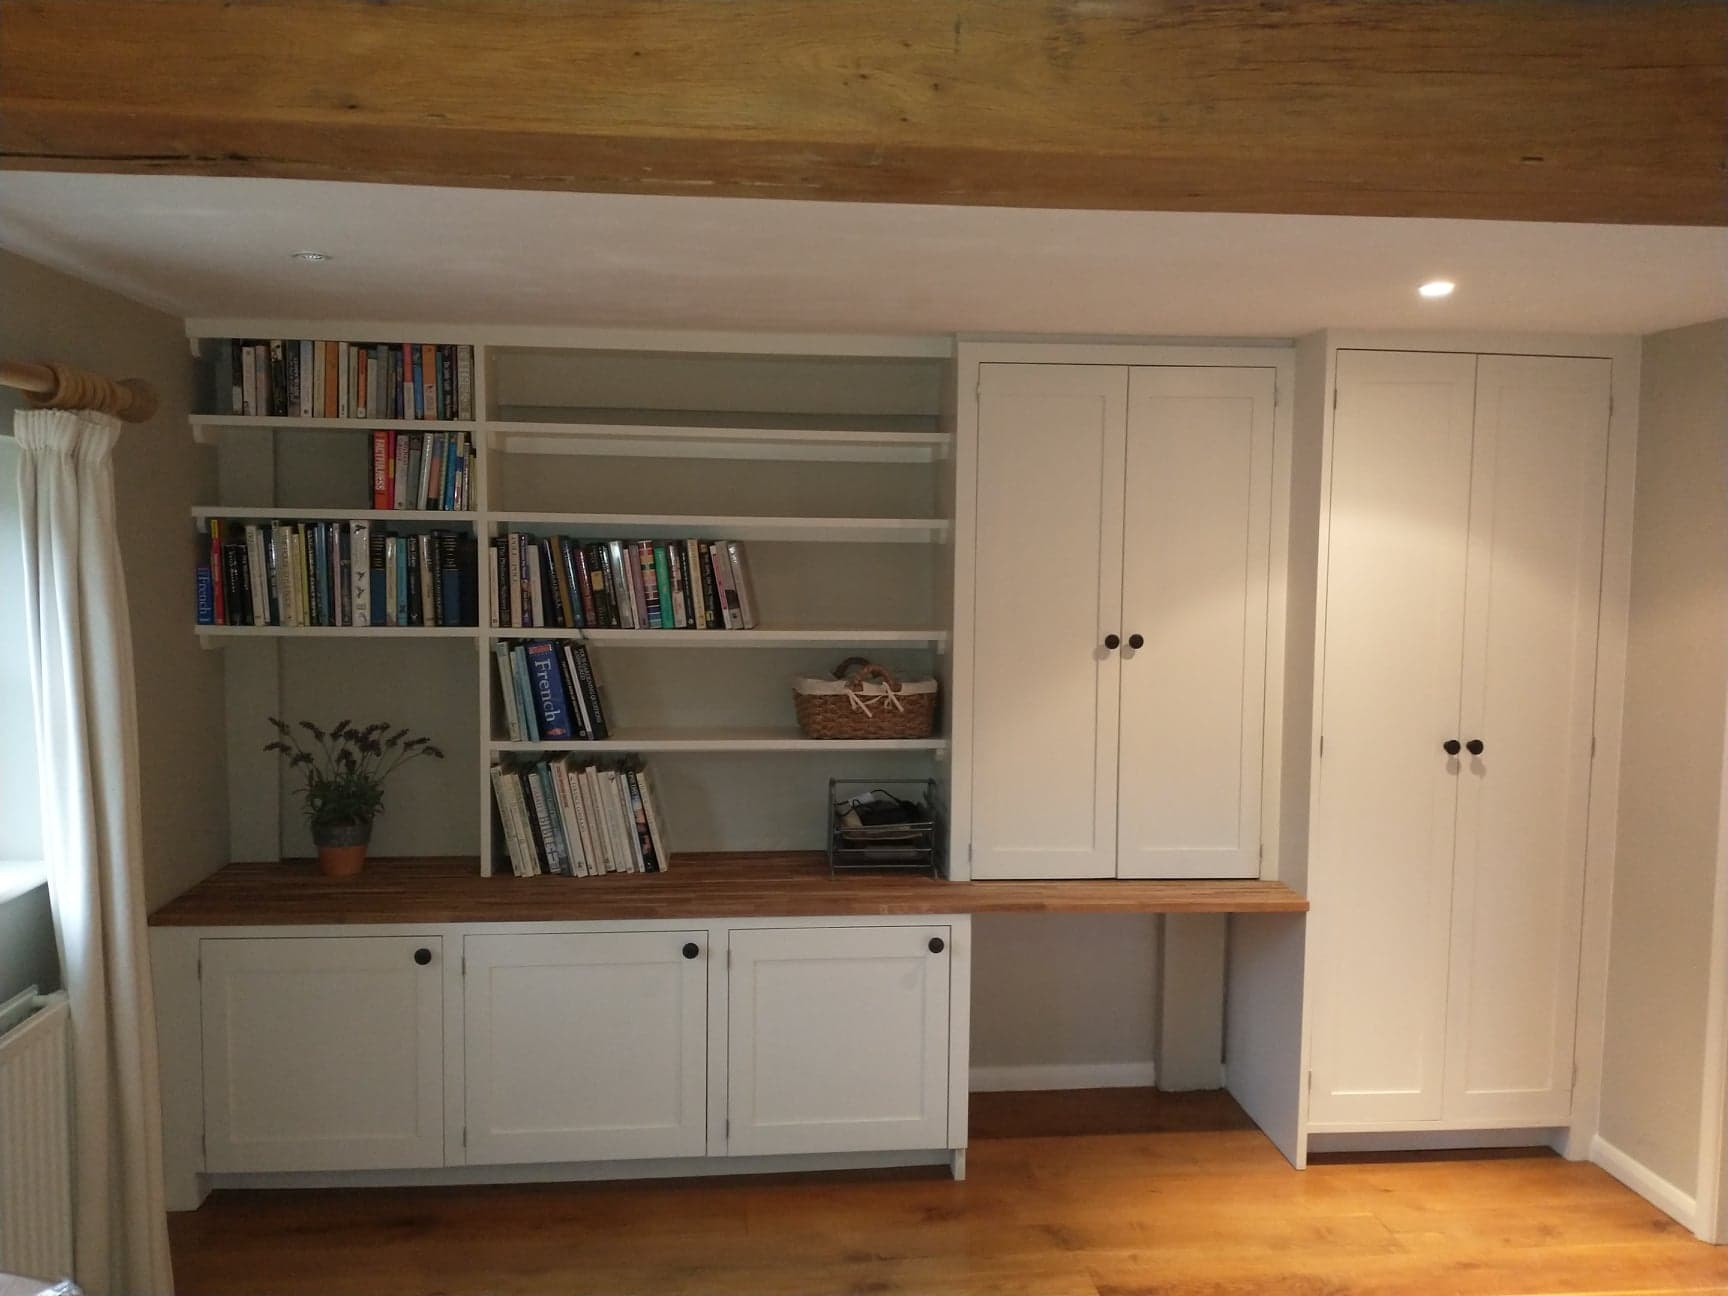 Bespoke cabinets and shelving with oak worktop.